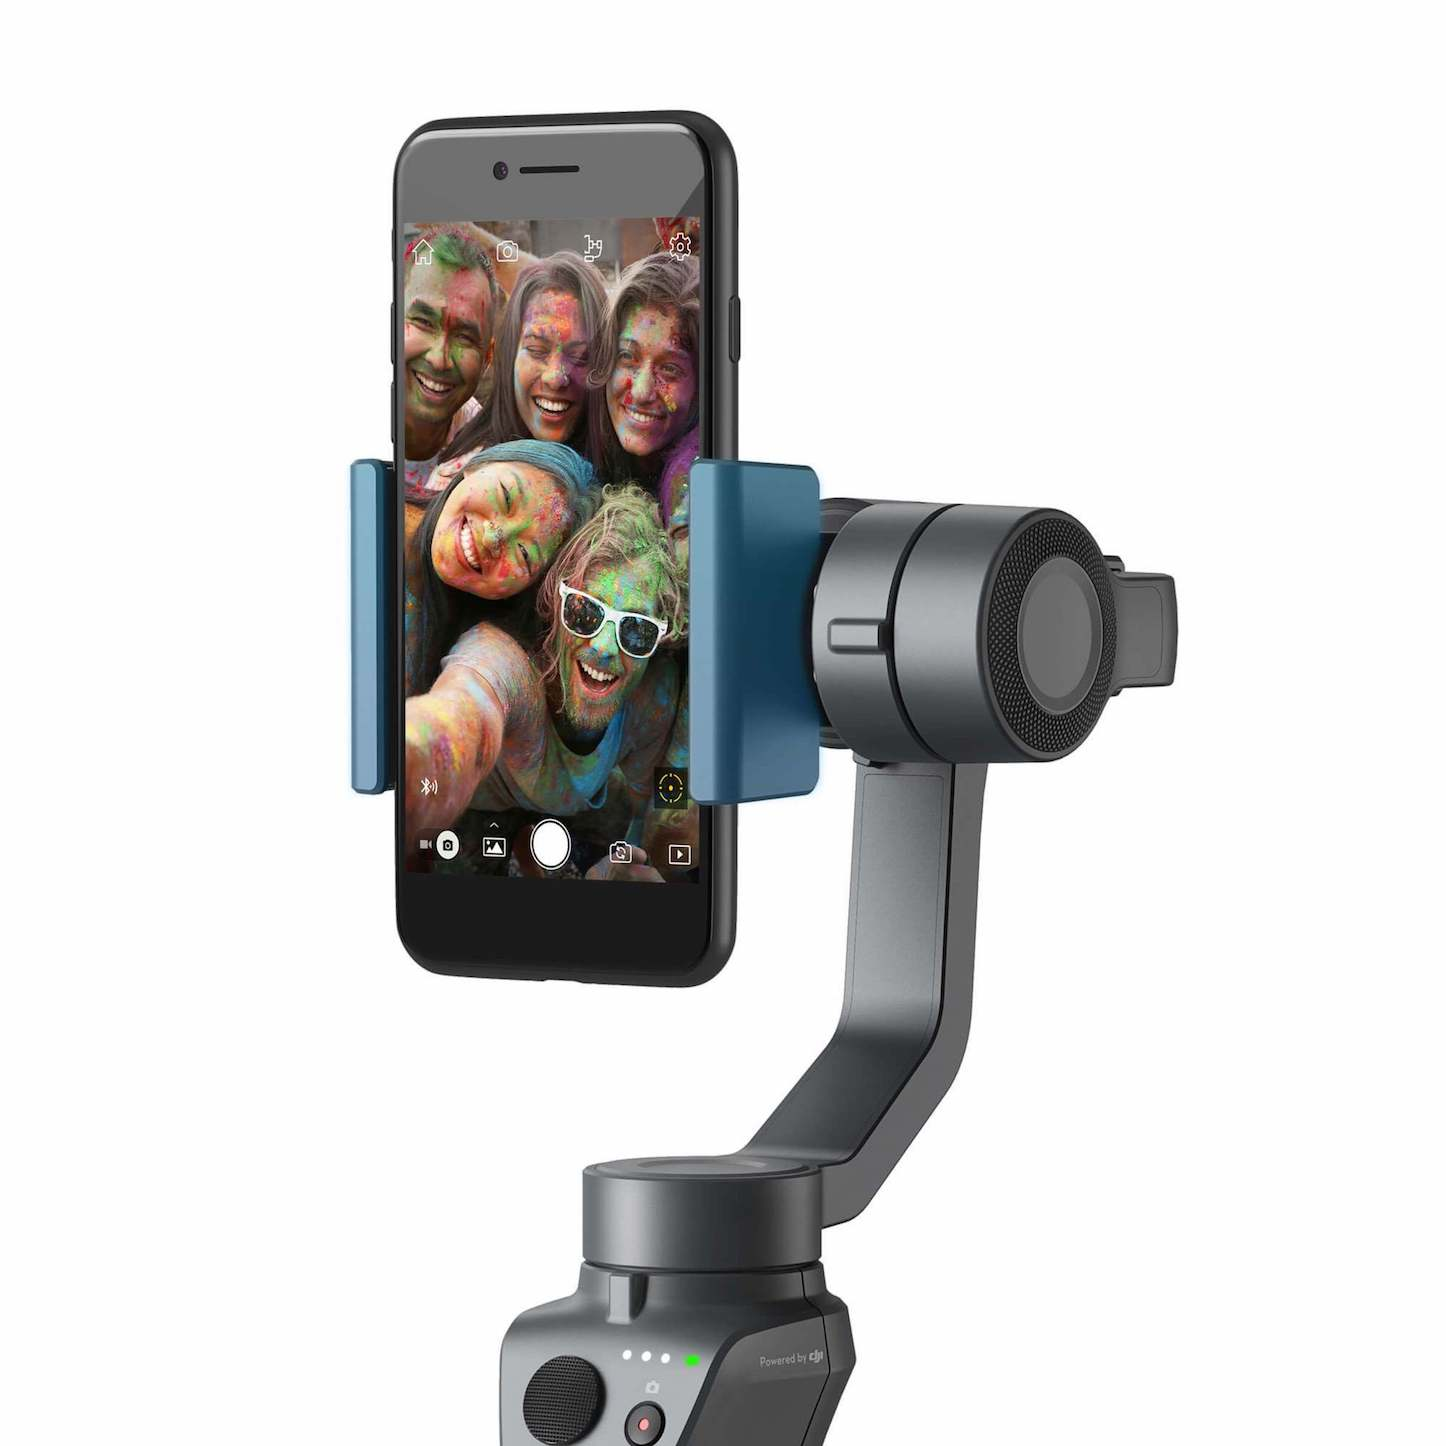 dji-reveals-new-osmo-mobile-2-gimbal-stabilizer-ahead-of-ces-2018-0004.jpg